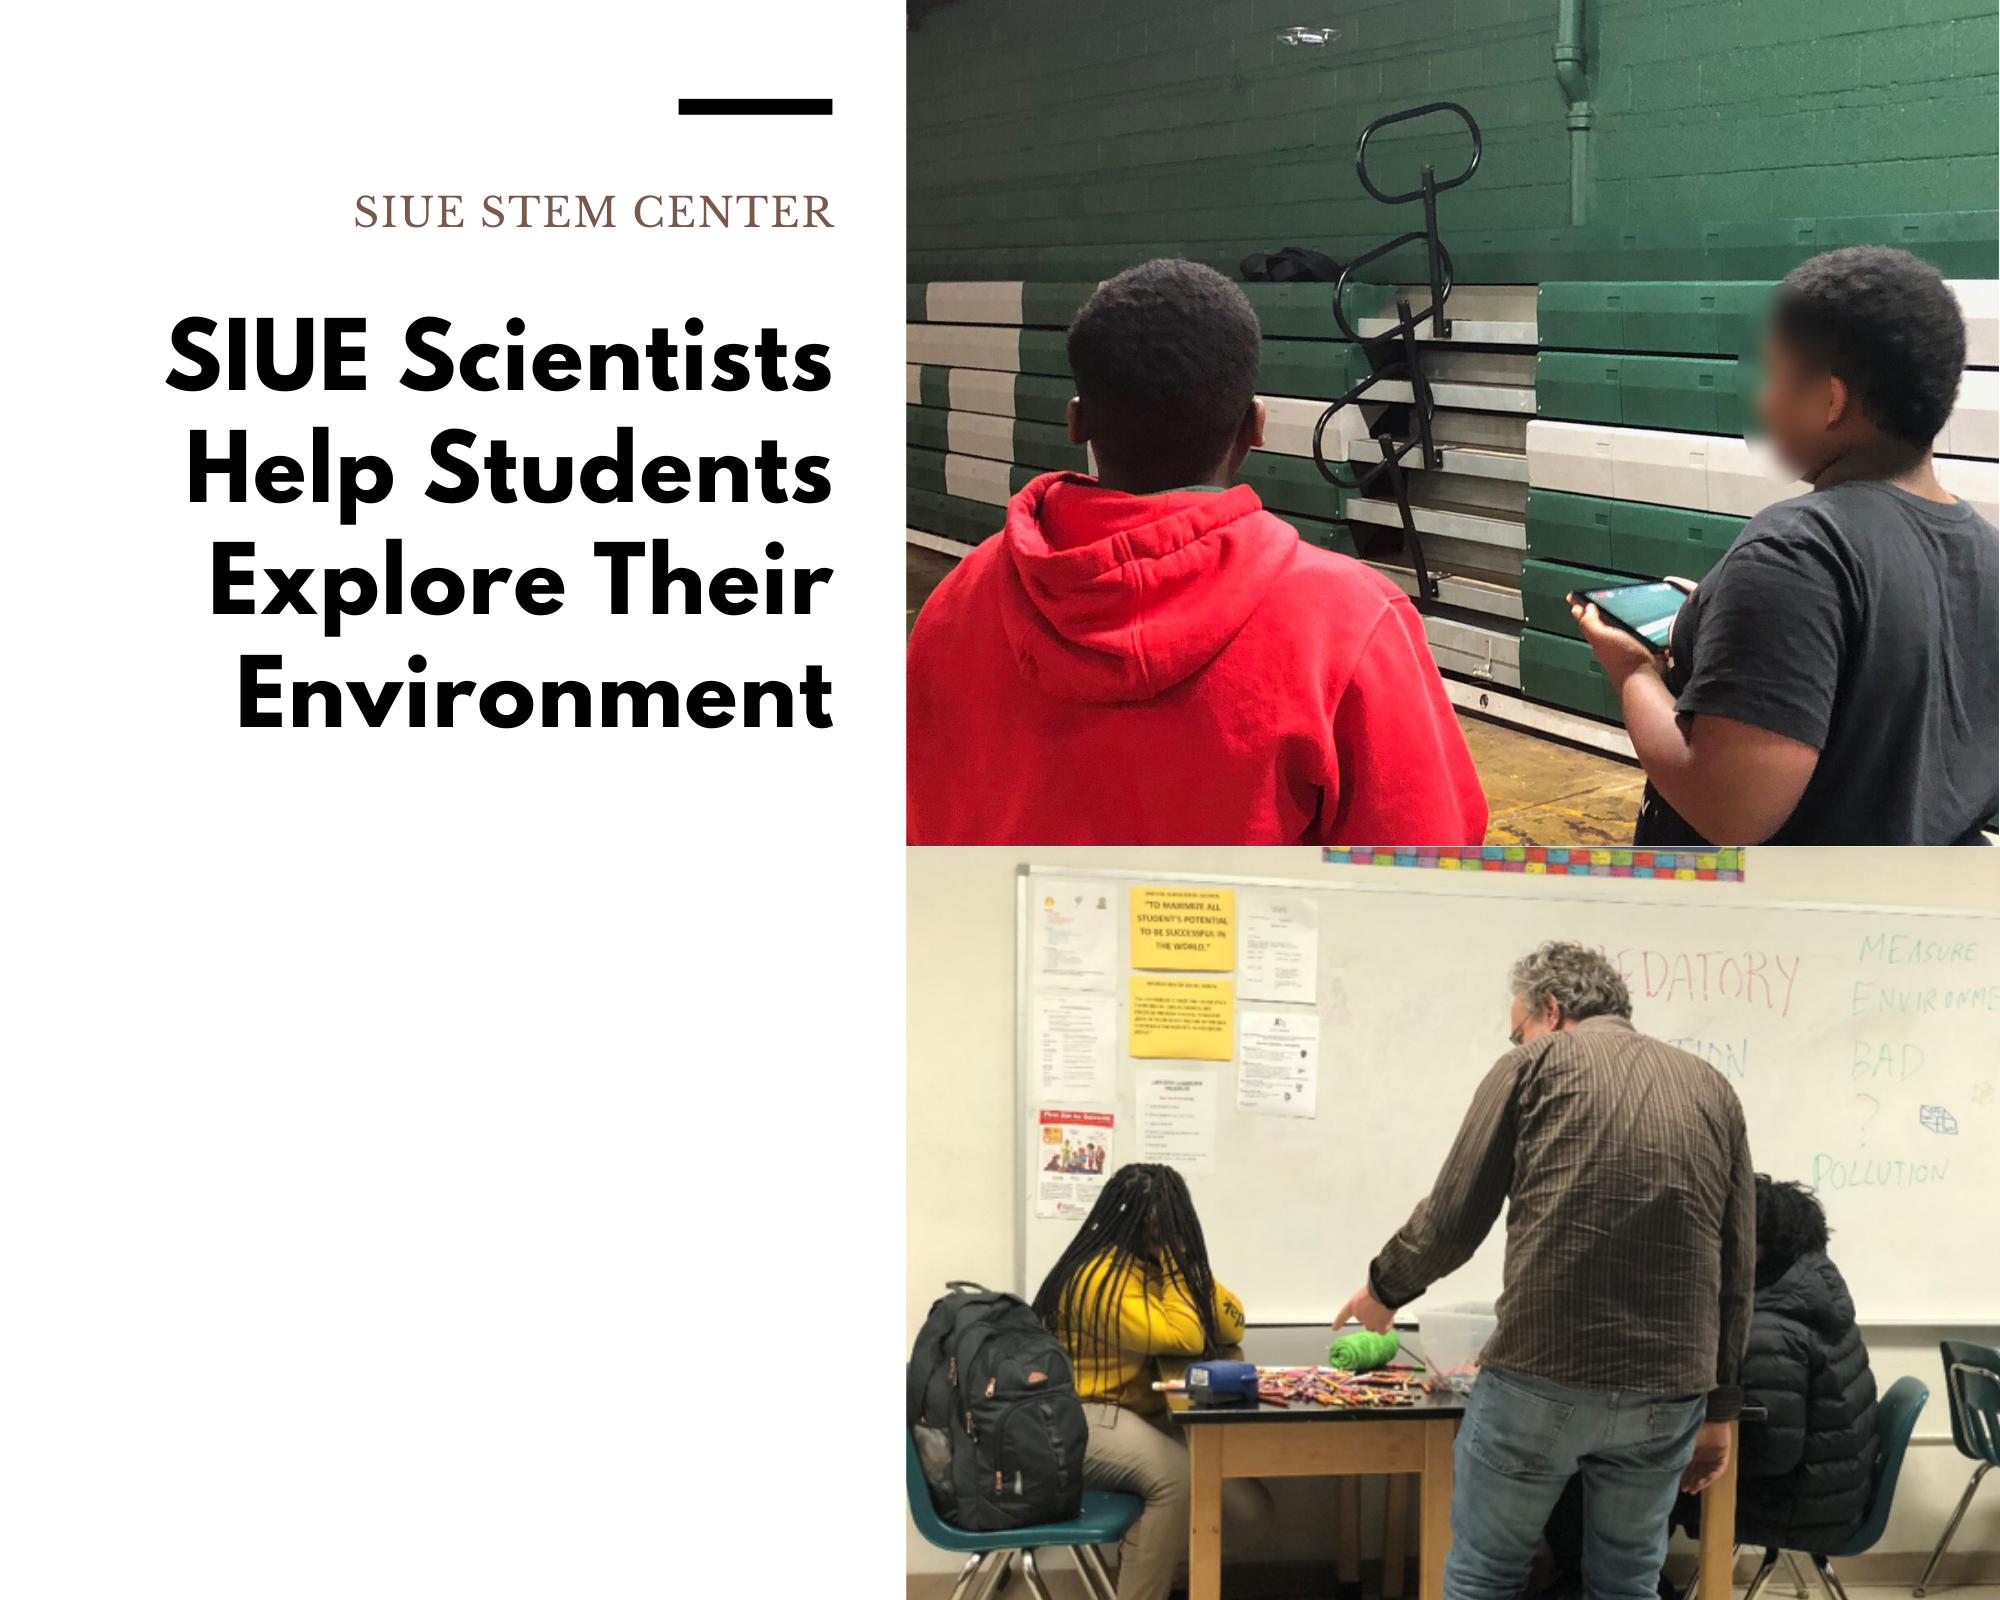 Students Explore Their Environment Through Science